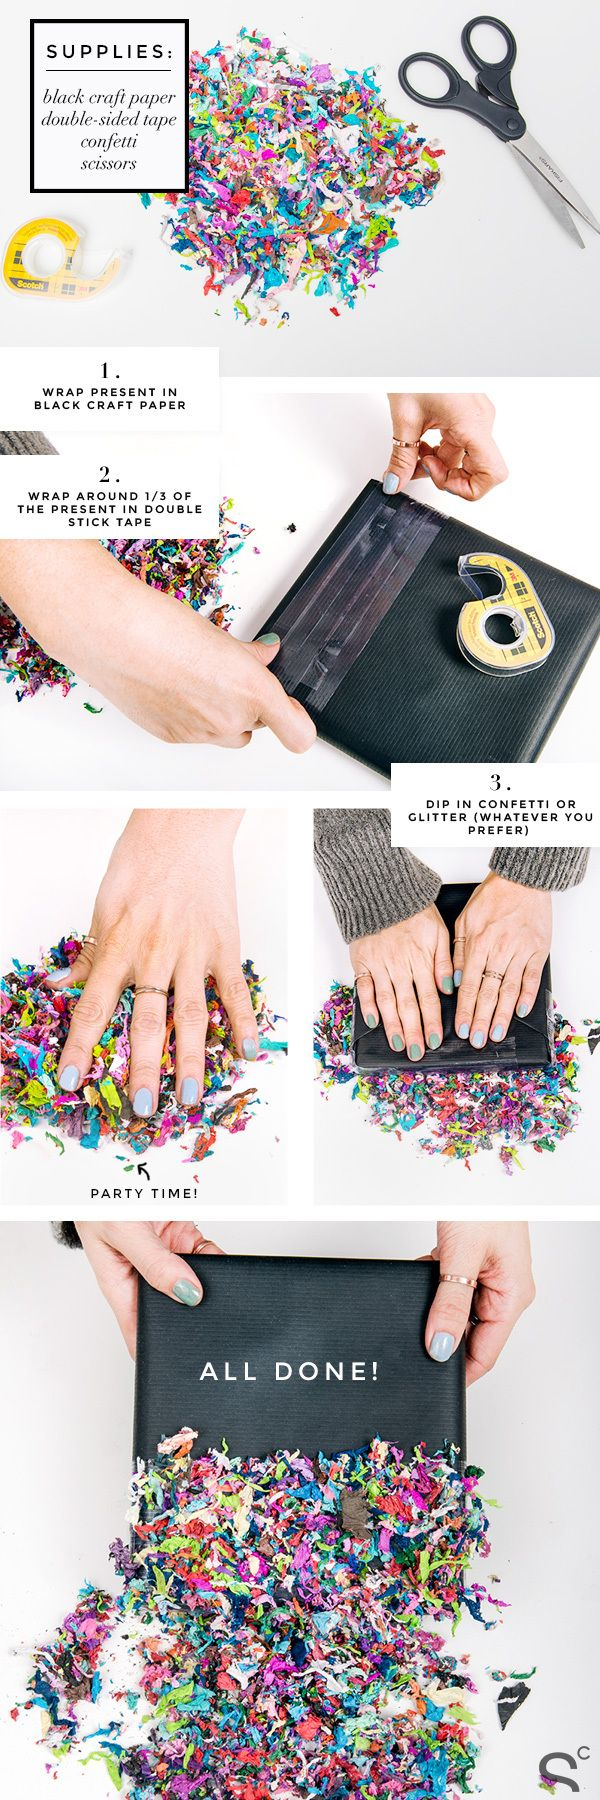 DIY Gift Wrapping - confetti dipped presents